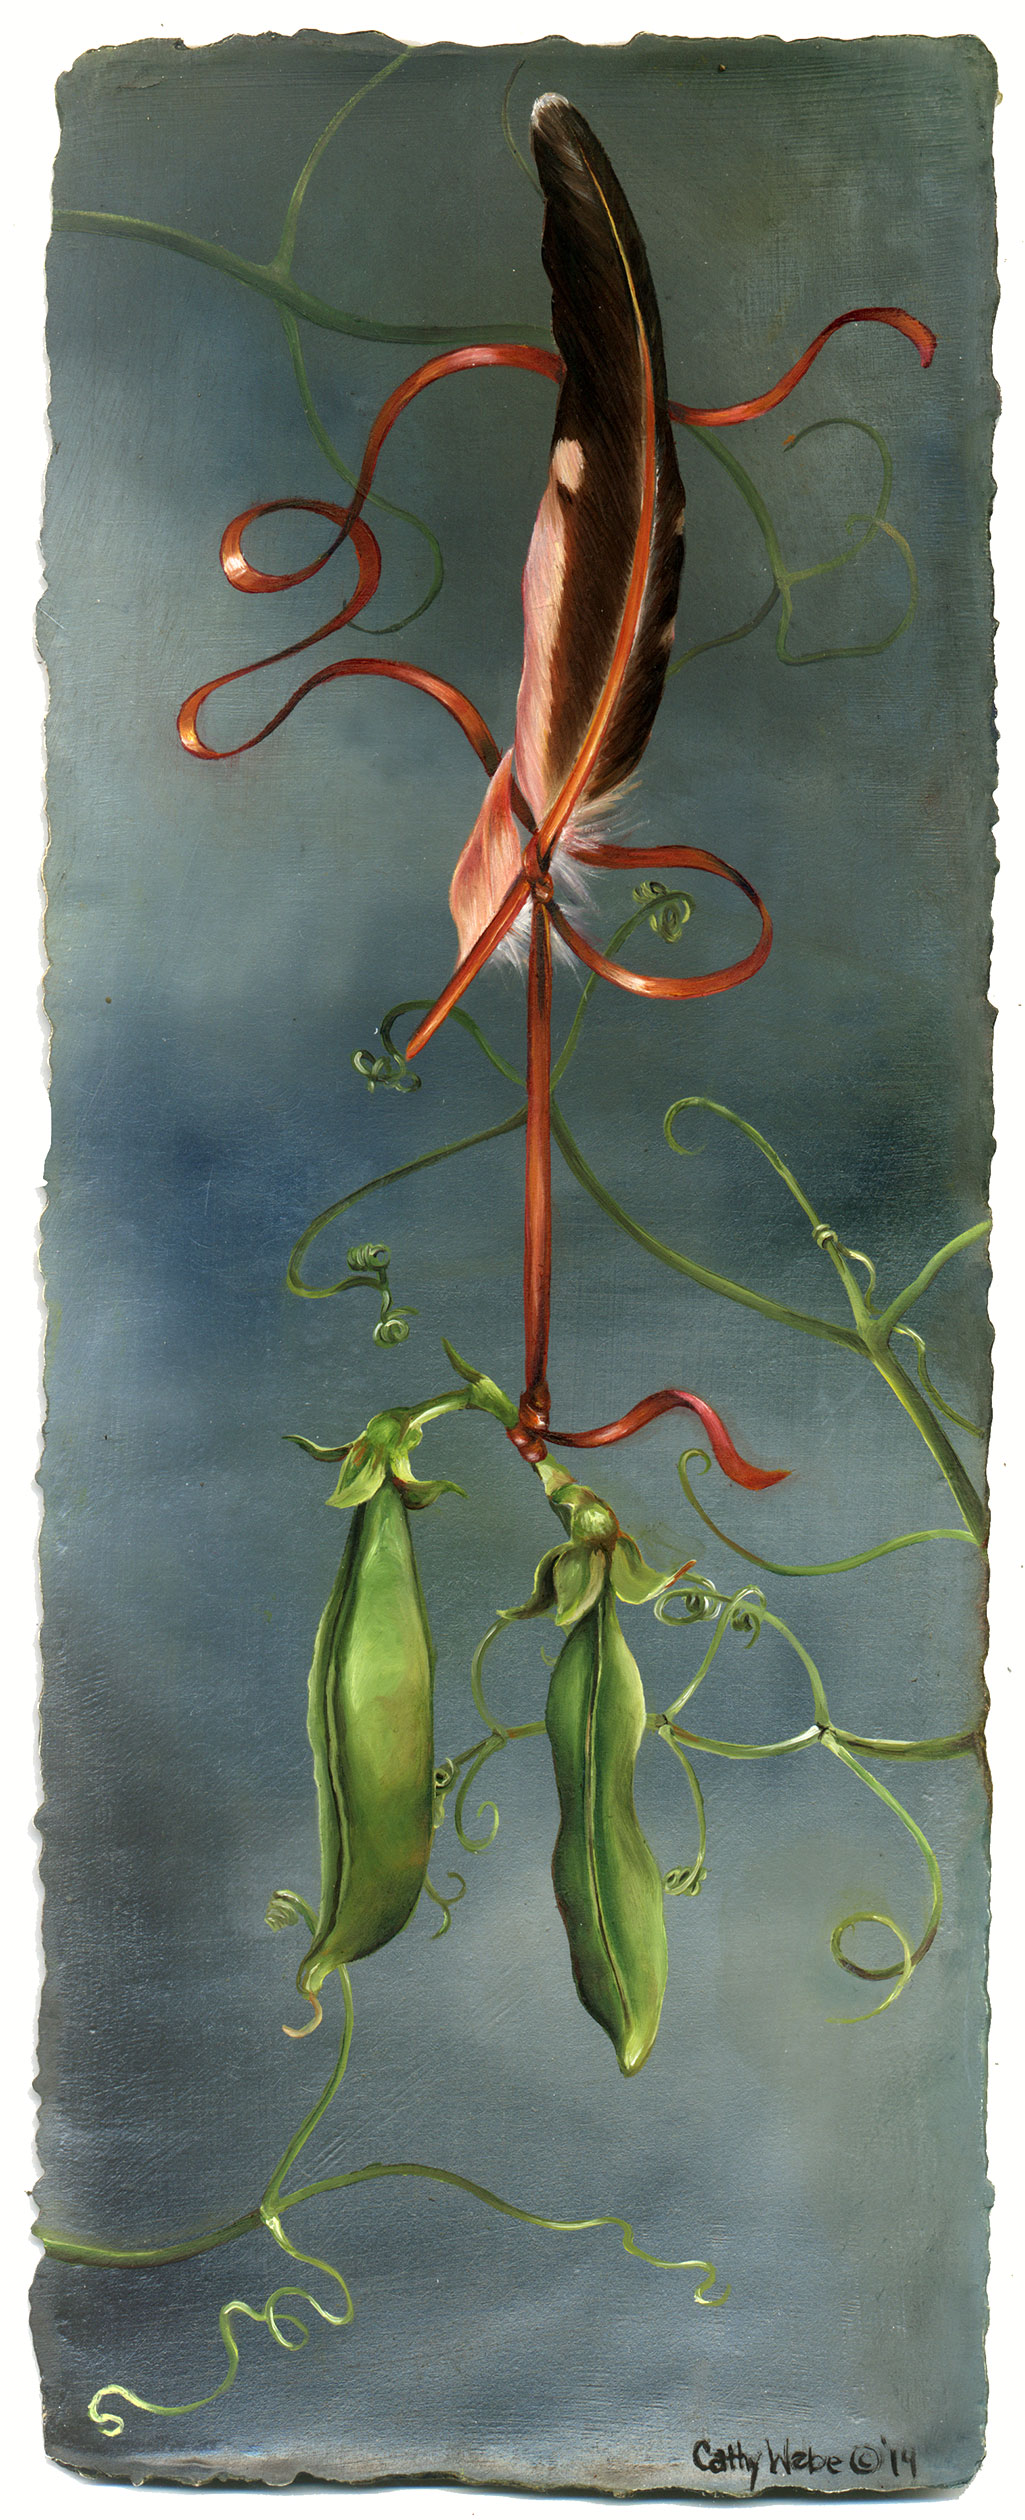 cathy weber - art - painting - woman - oil - montana - painting - parchment - skin - botanical - ribbon - pea - oil painting